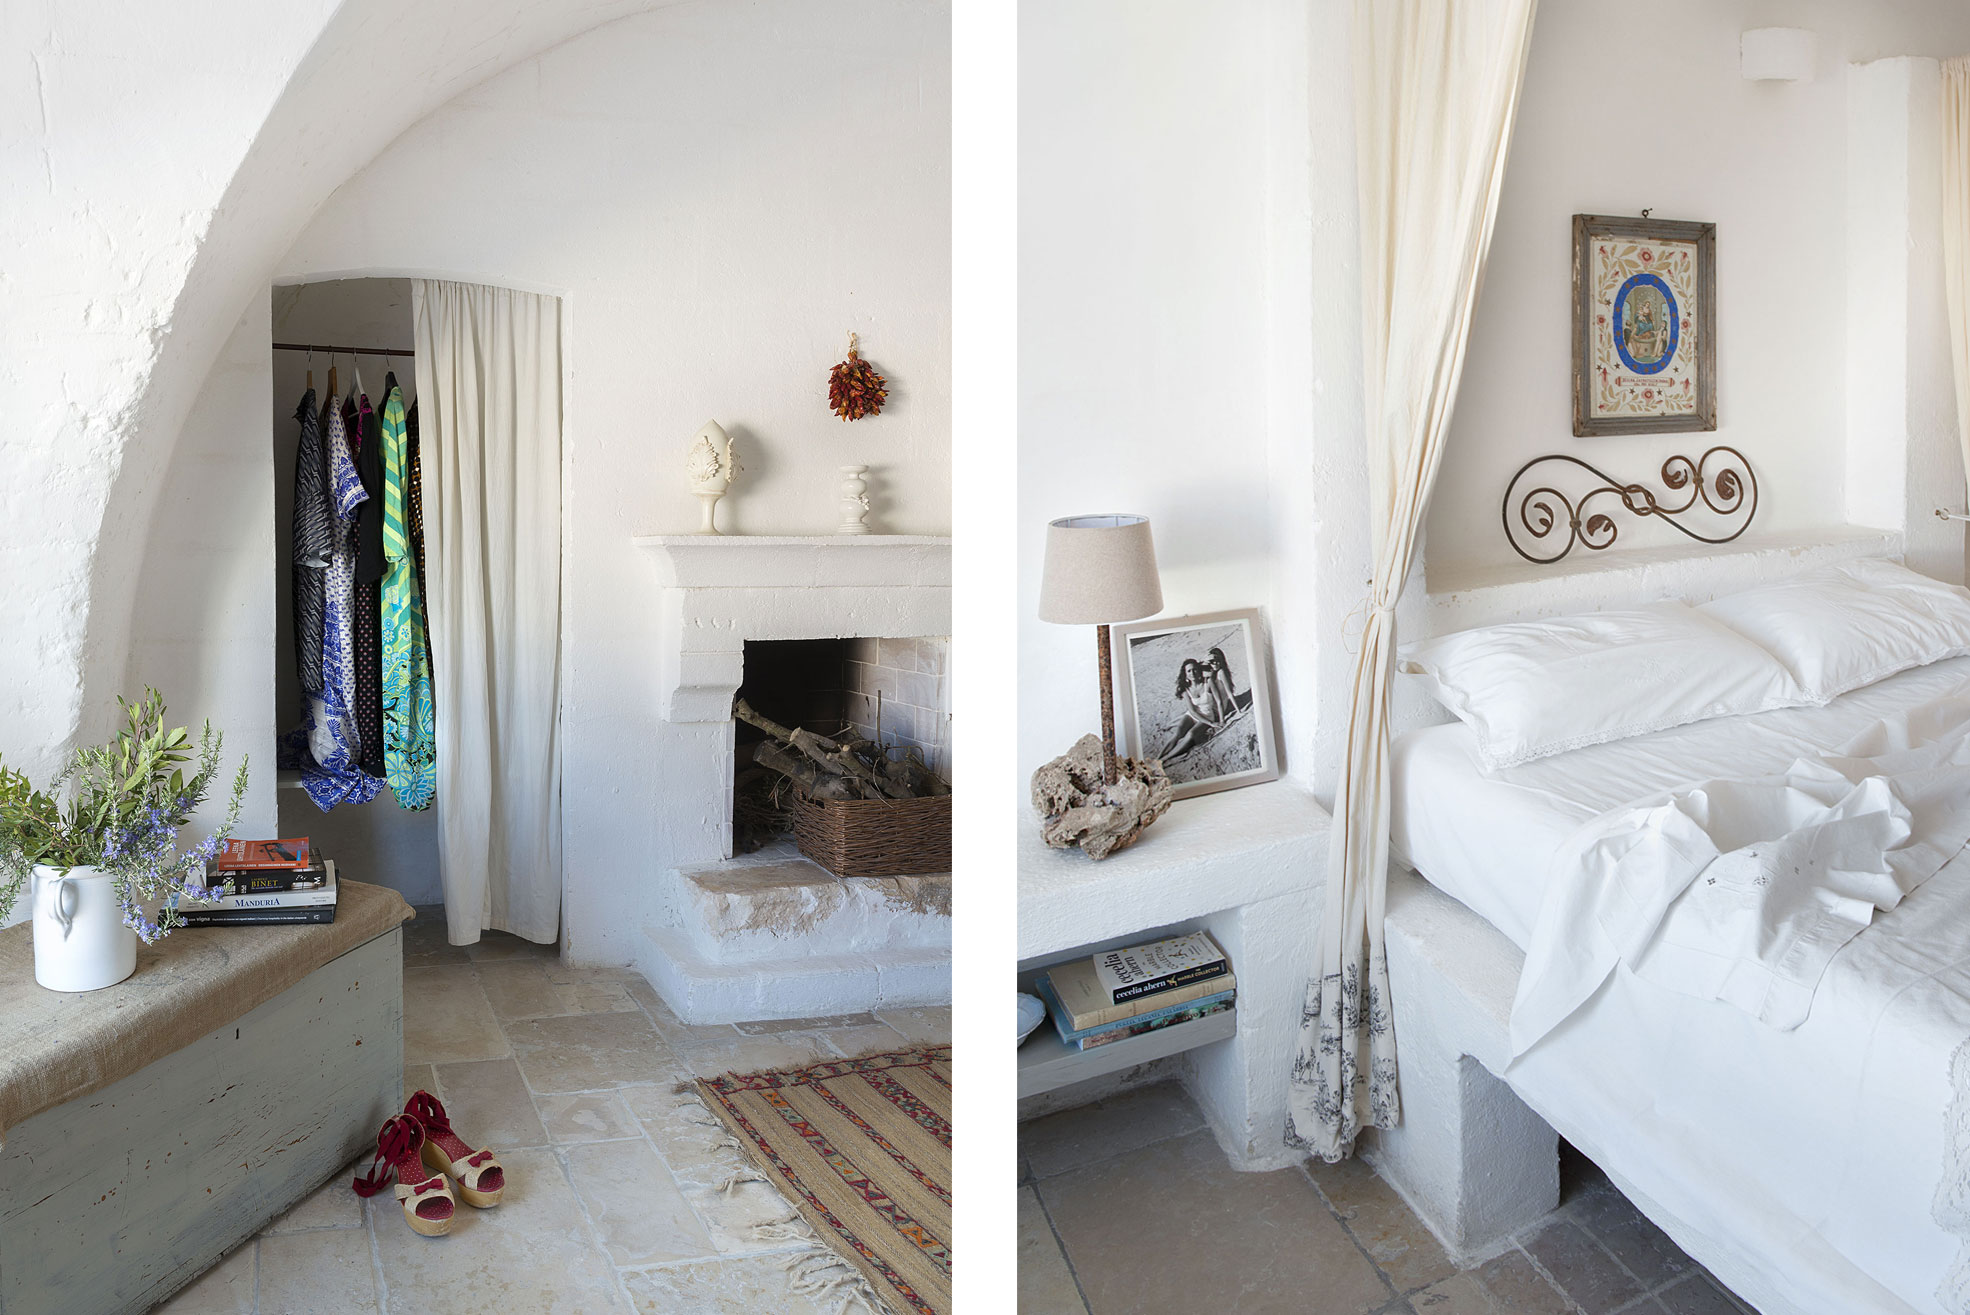 Bedroom and wardrobe detail at Masseria Potenti in Puglia Photographer Maria Teresa Furnari